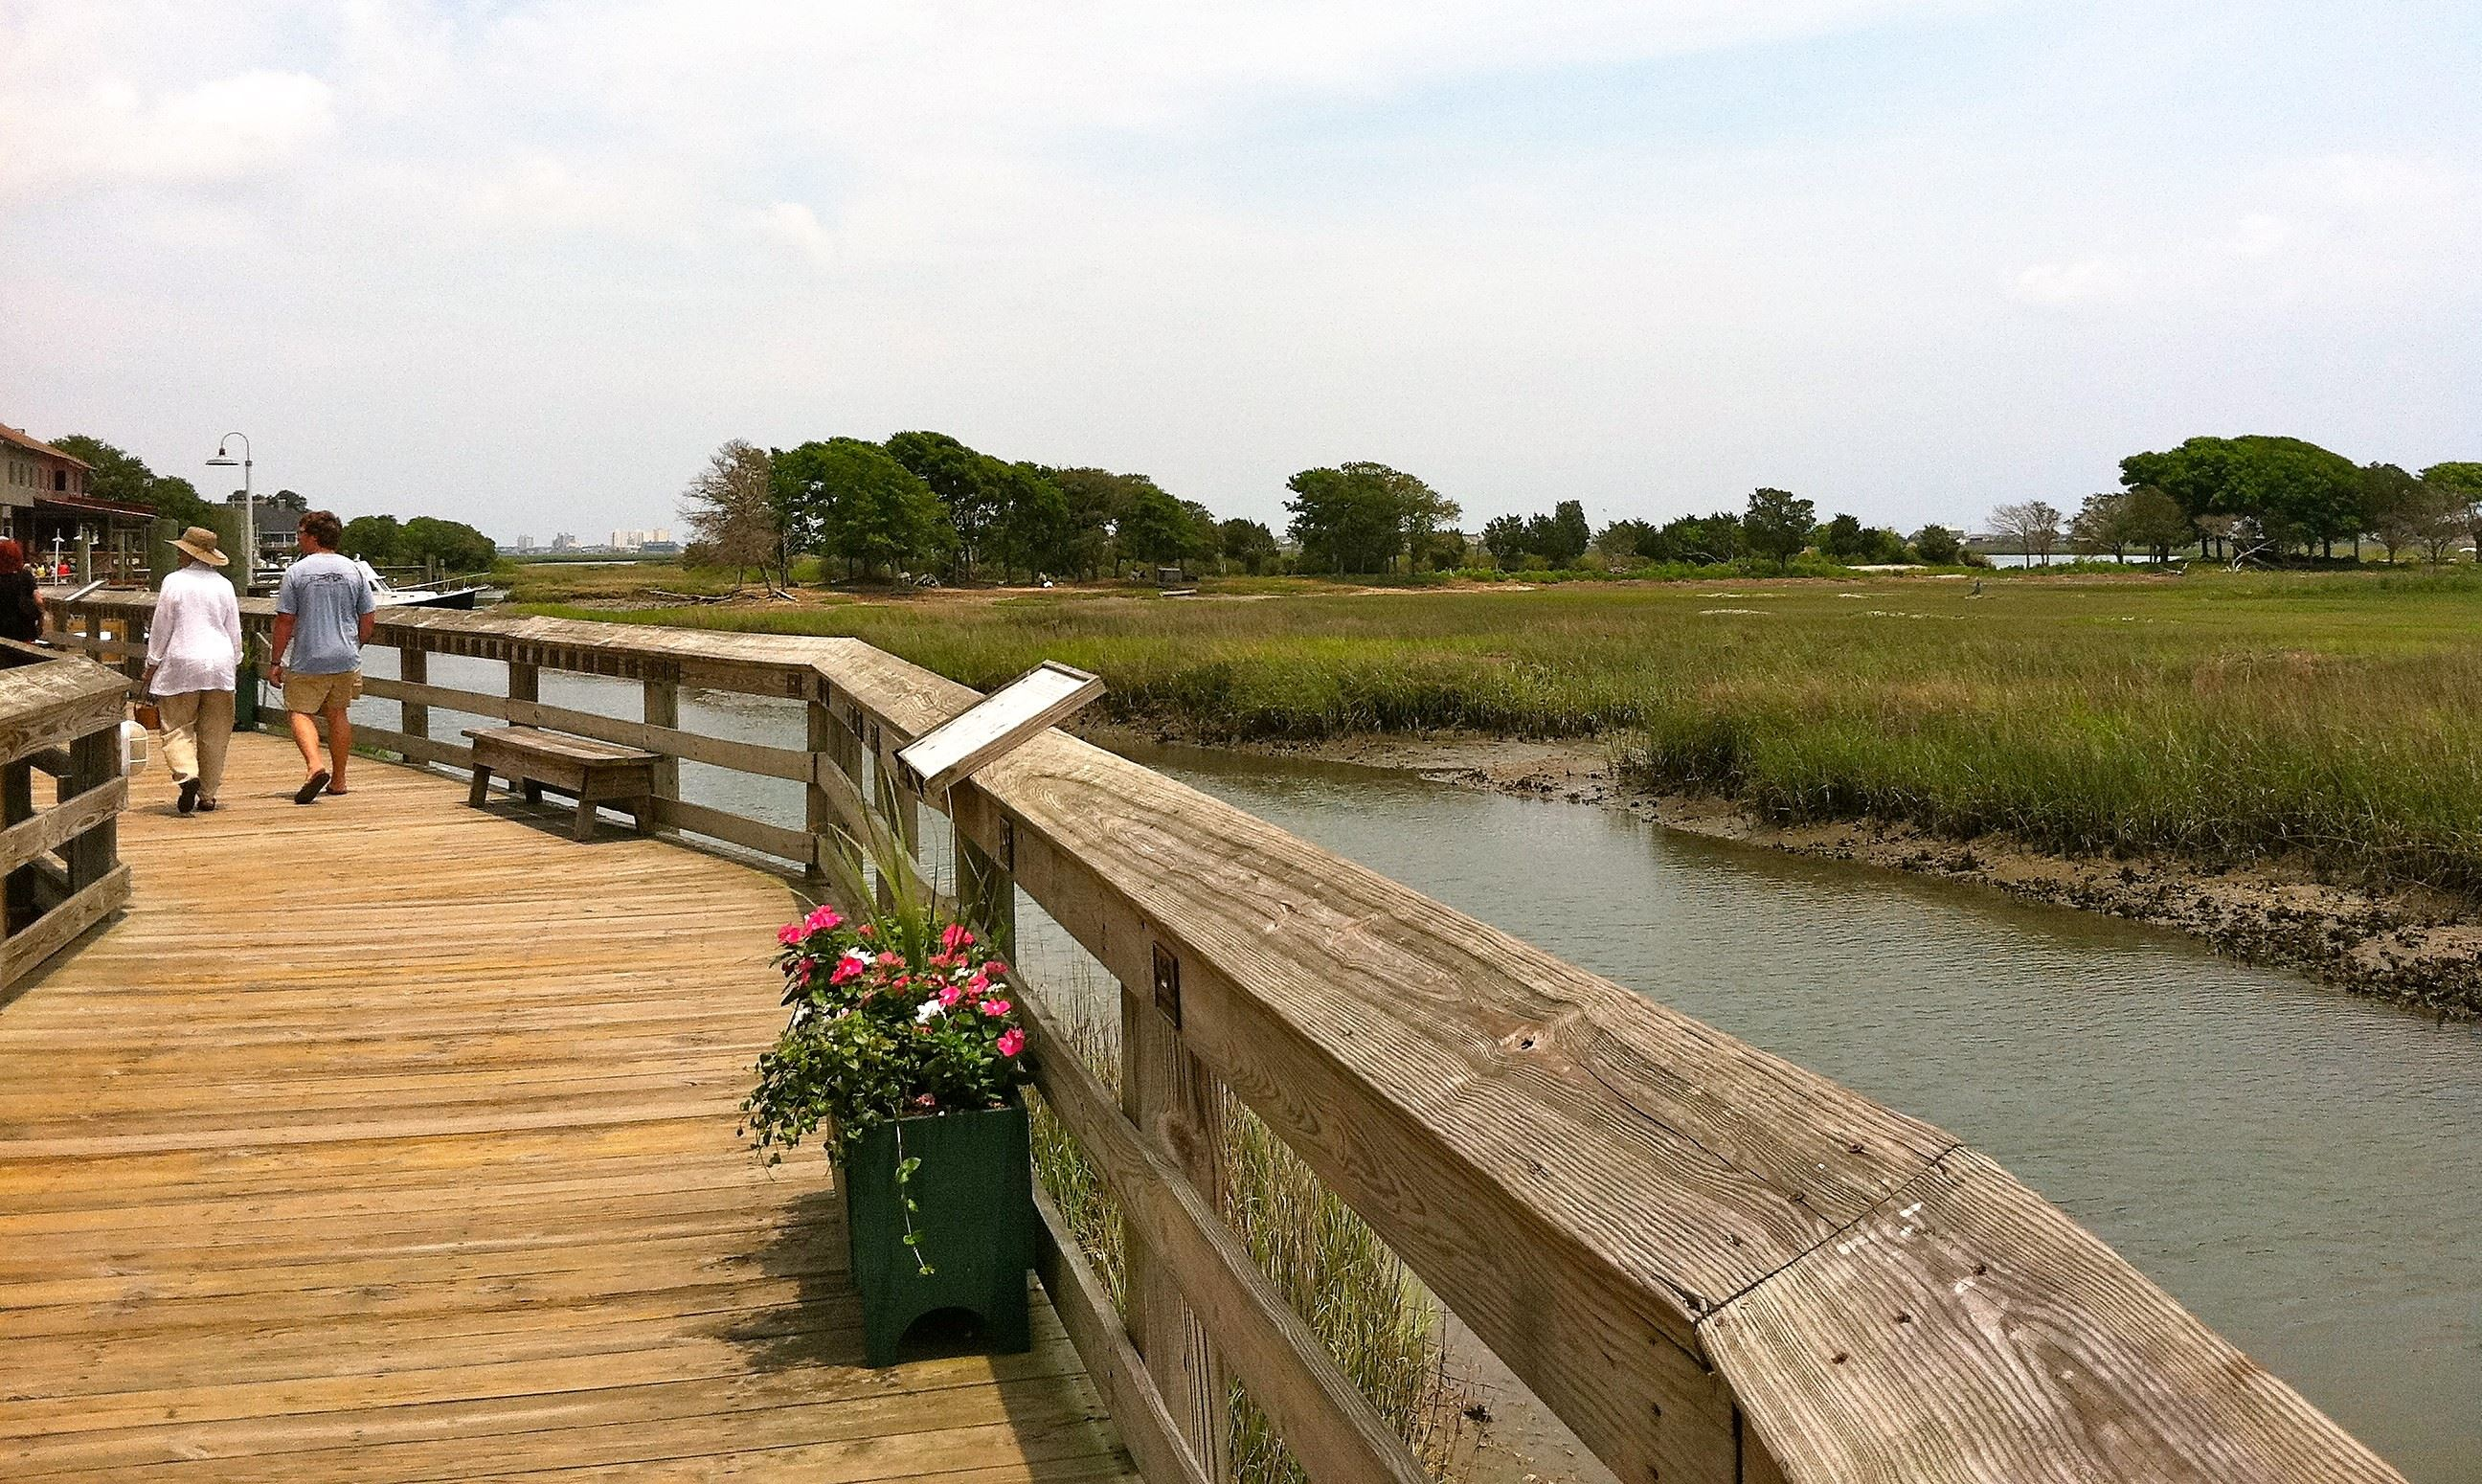 People walk along the wooden boardwalk known as the Murrells Inlet MarshWalk